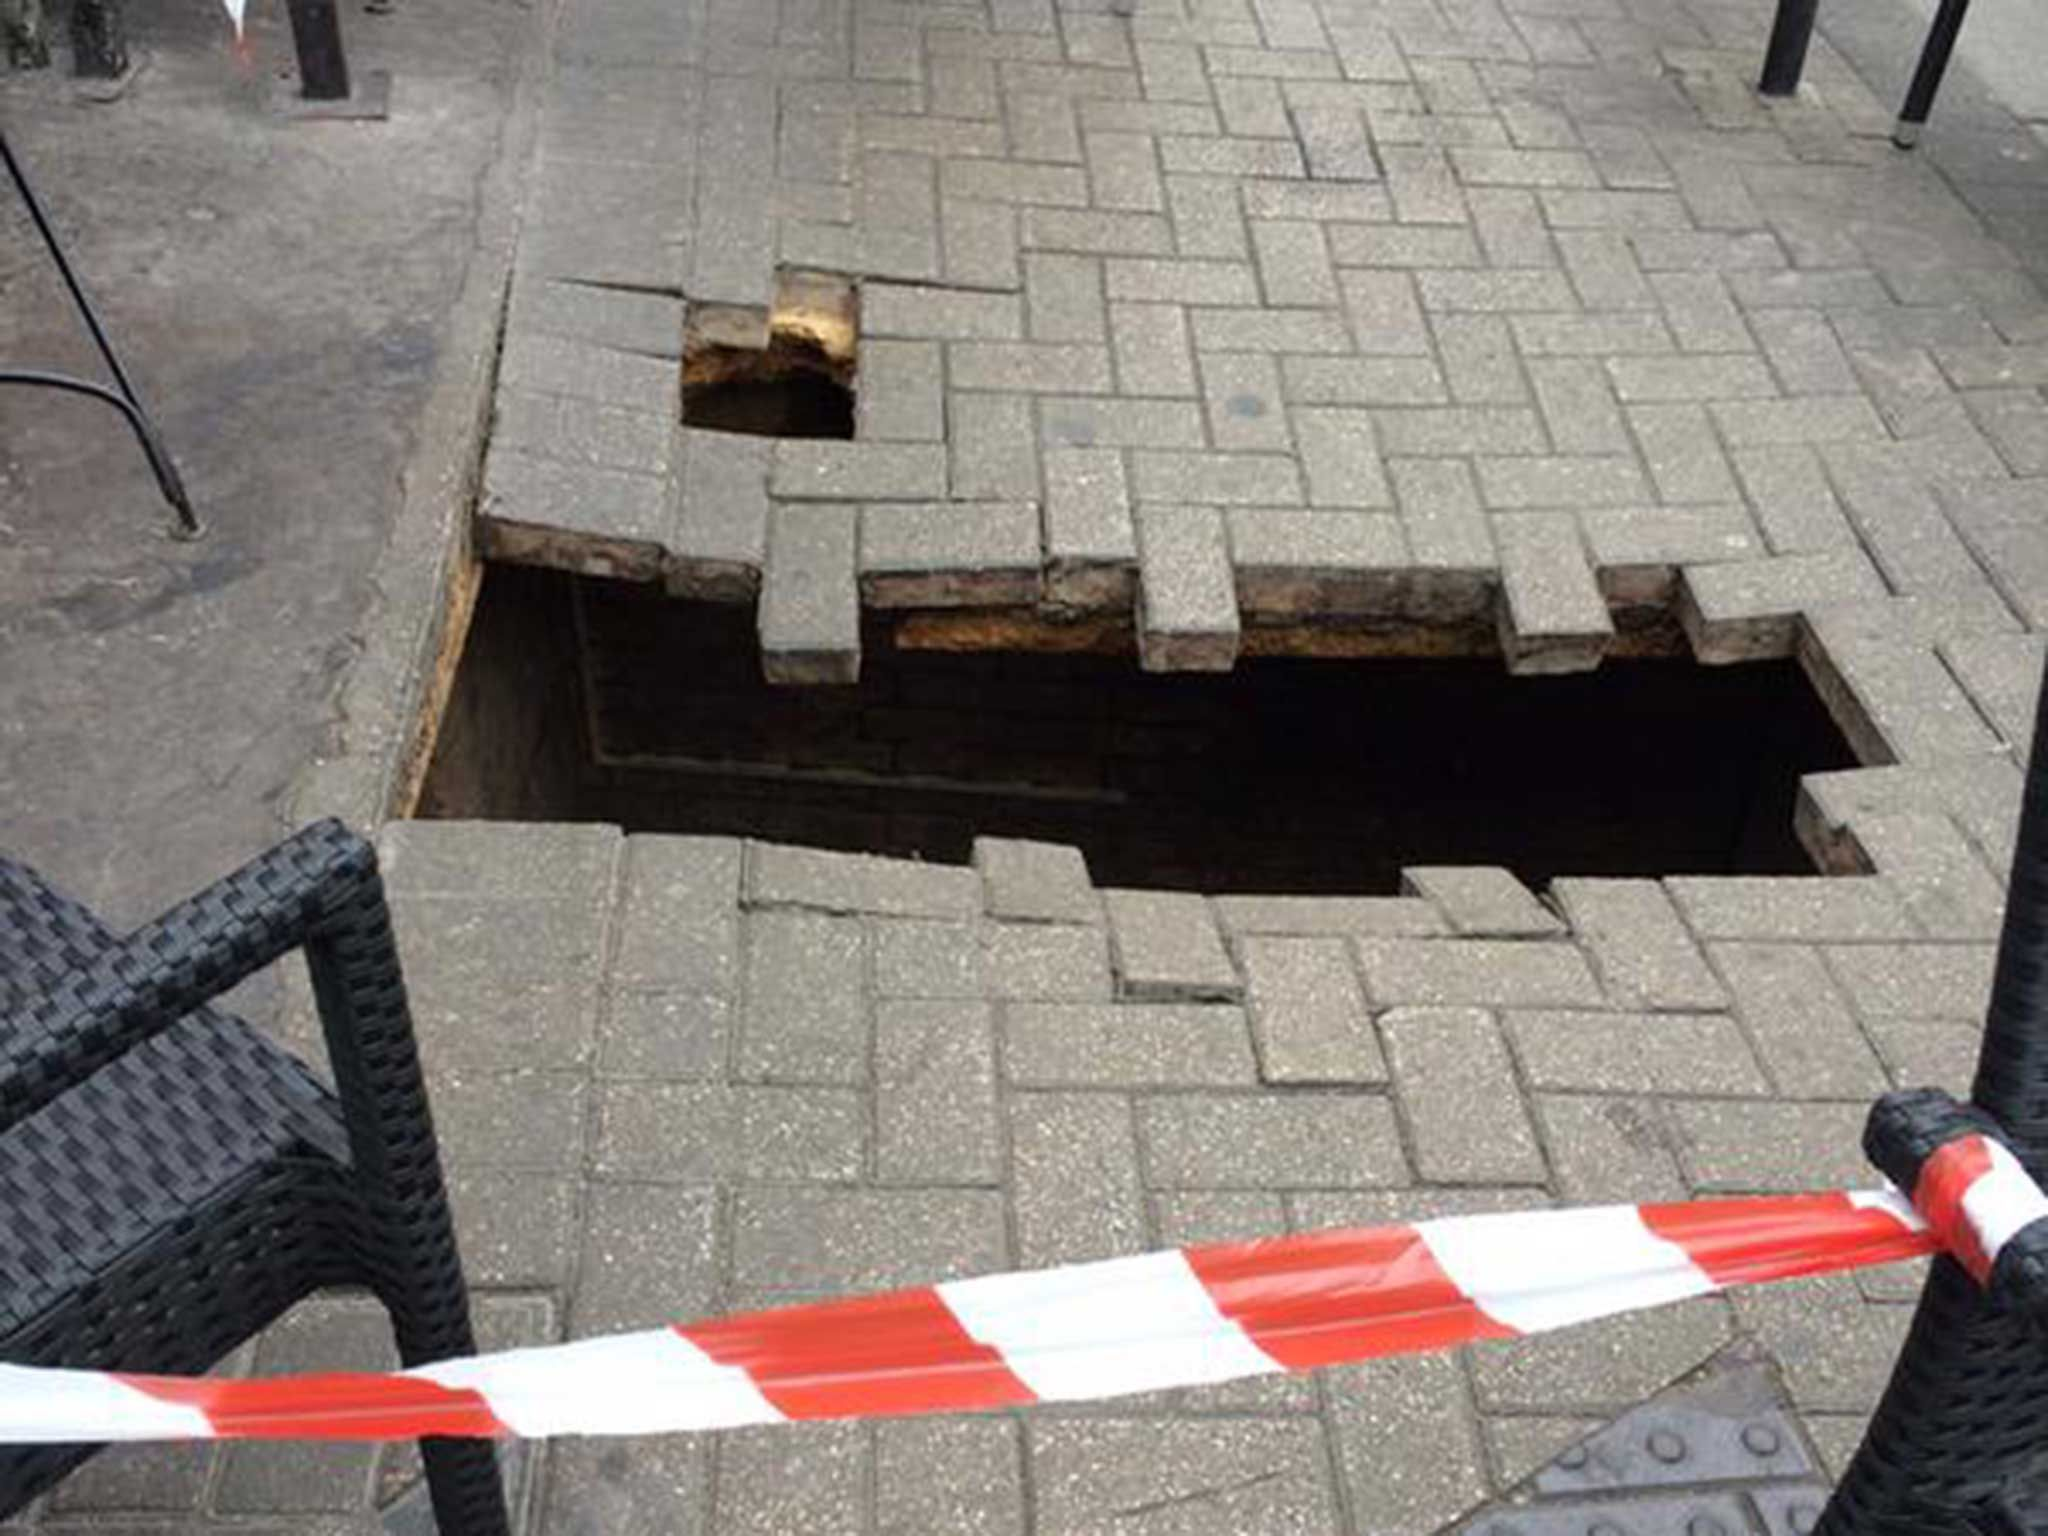 Fulham (London) 2015 - Dramatic events unfolded in west London today after a woman fell into a hole possibly masquerading as a sinkhole.